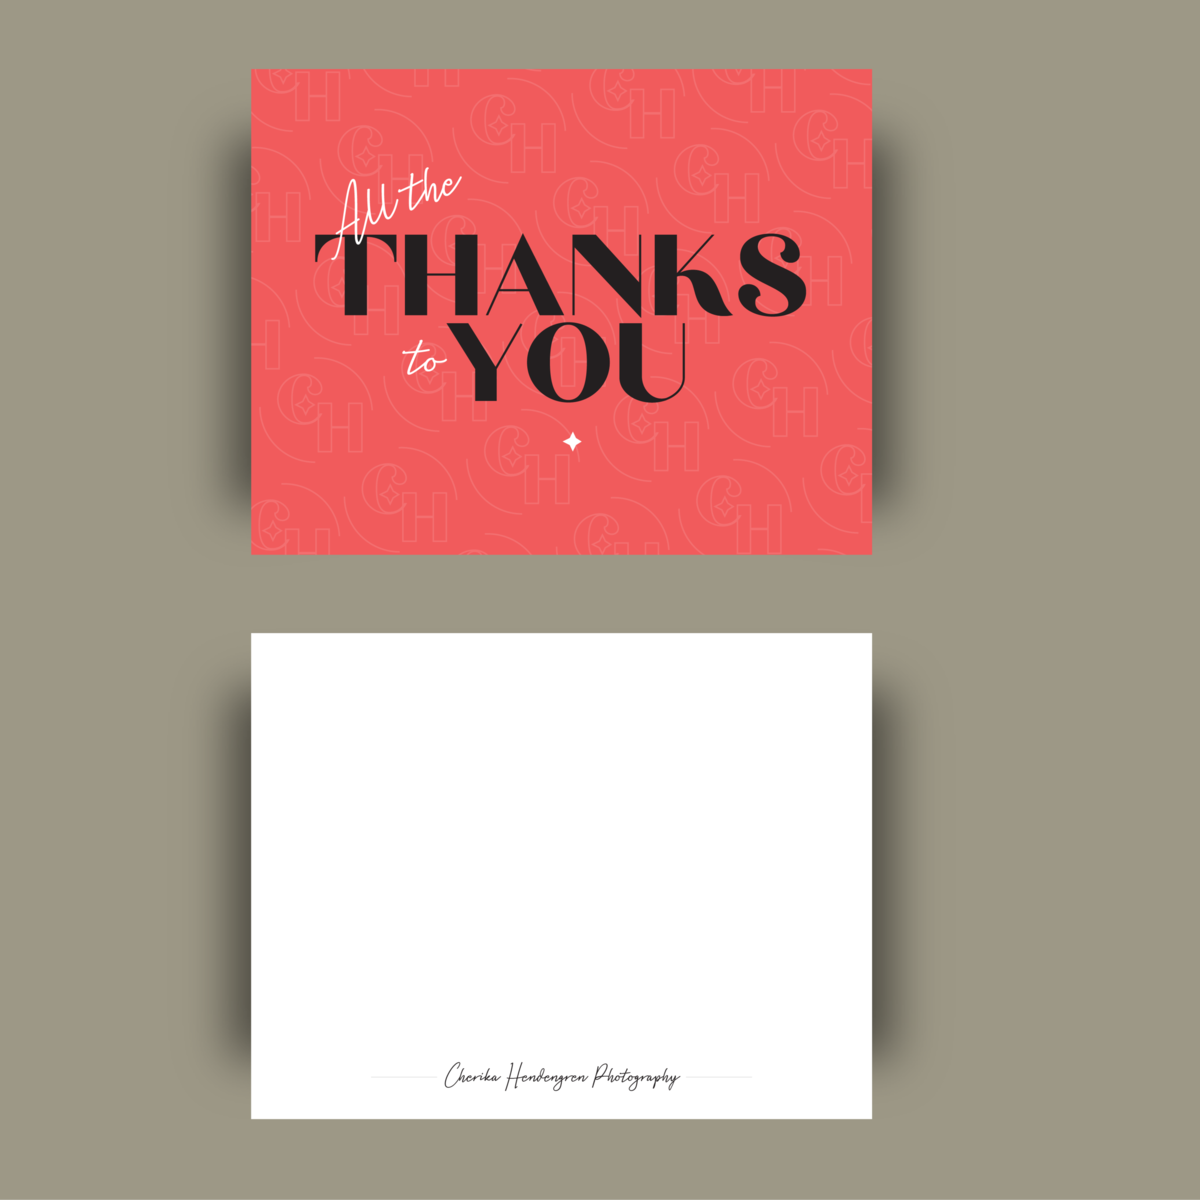 CH Thank You Mockup-01